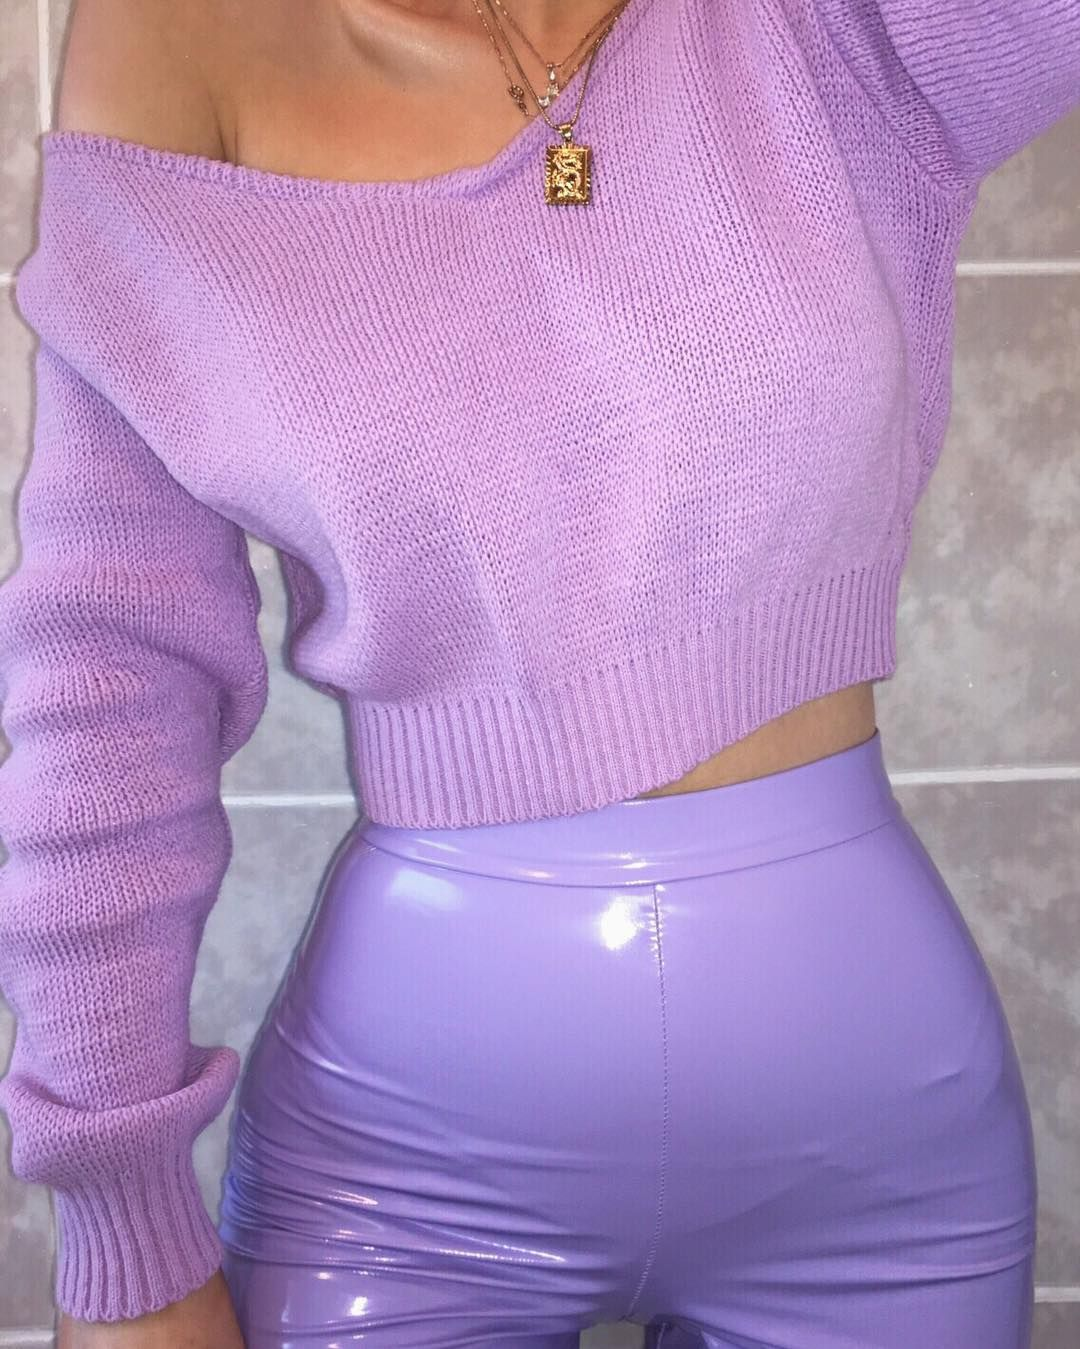 fac6bab7bb281 pastel outfit | liquid leggings | purple outfit | spring outfit | #ootd